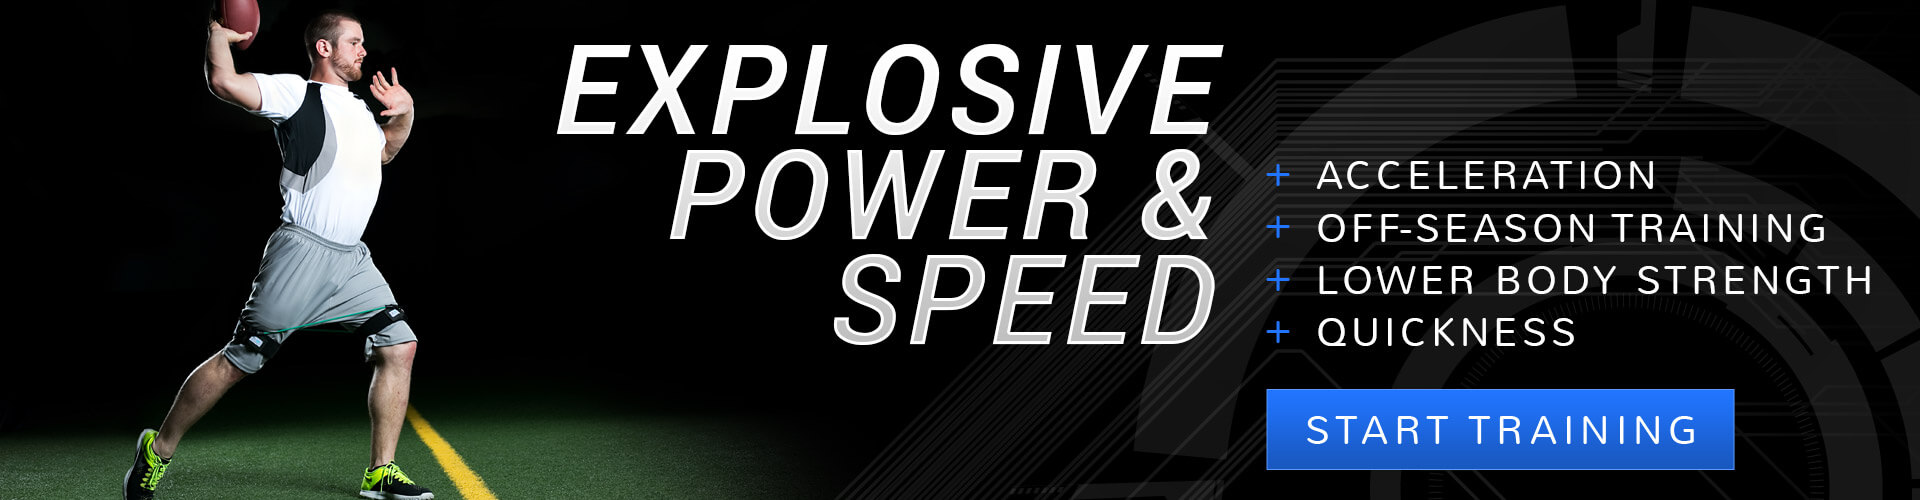 Get explosive power and speed for football; acceleration, off-season training, lower body strength, quickness.